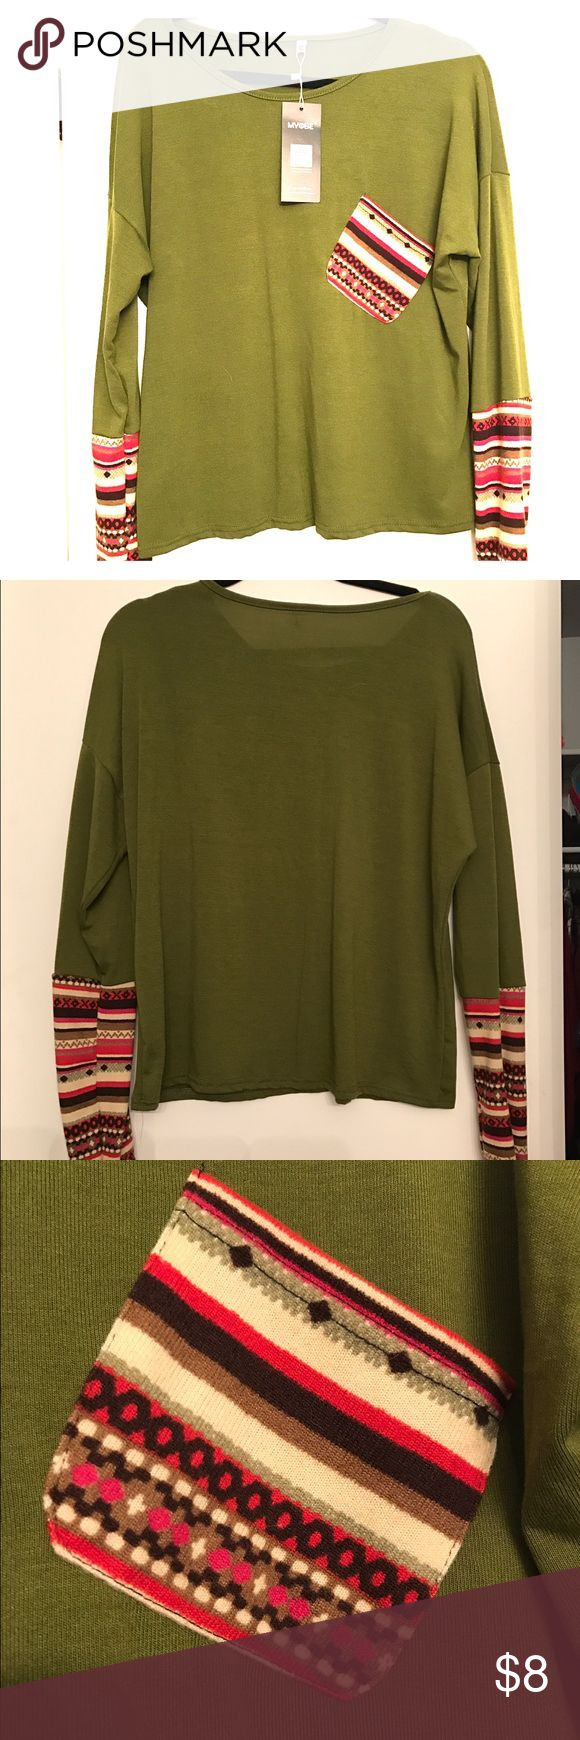 Selling this Olive green long sleeved top on Poshmark! My username is: tara_lynn_xo. #shopmycloset #poshmark #fashion #shopping #style #forsale #Sweaters